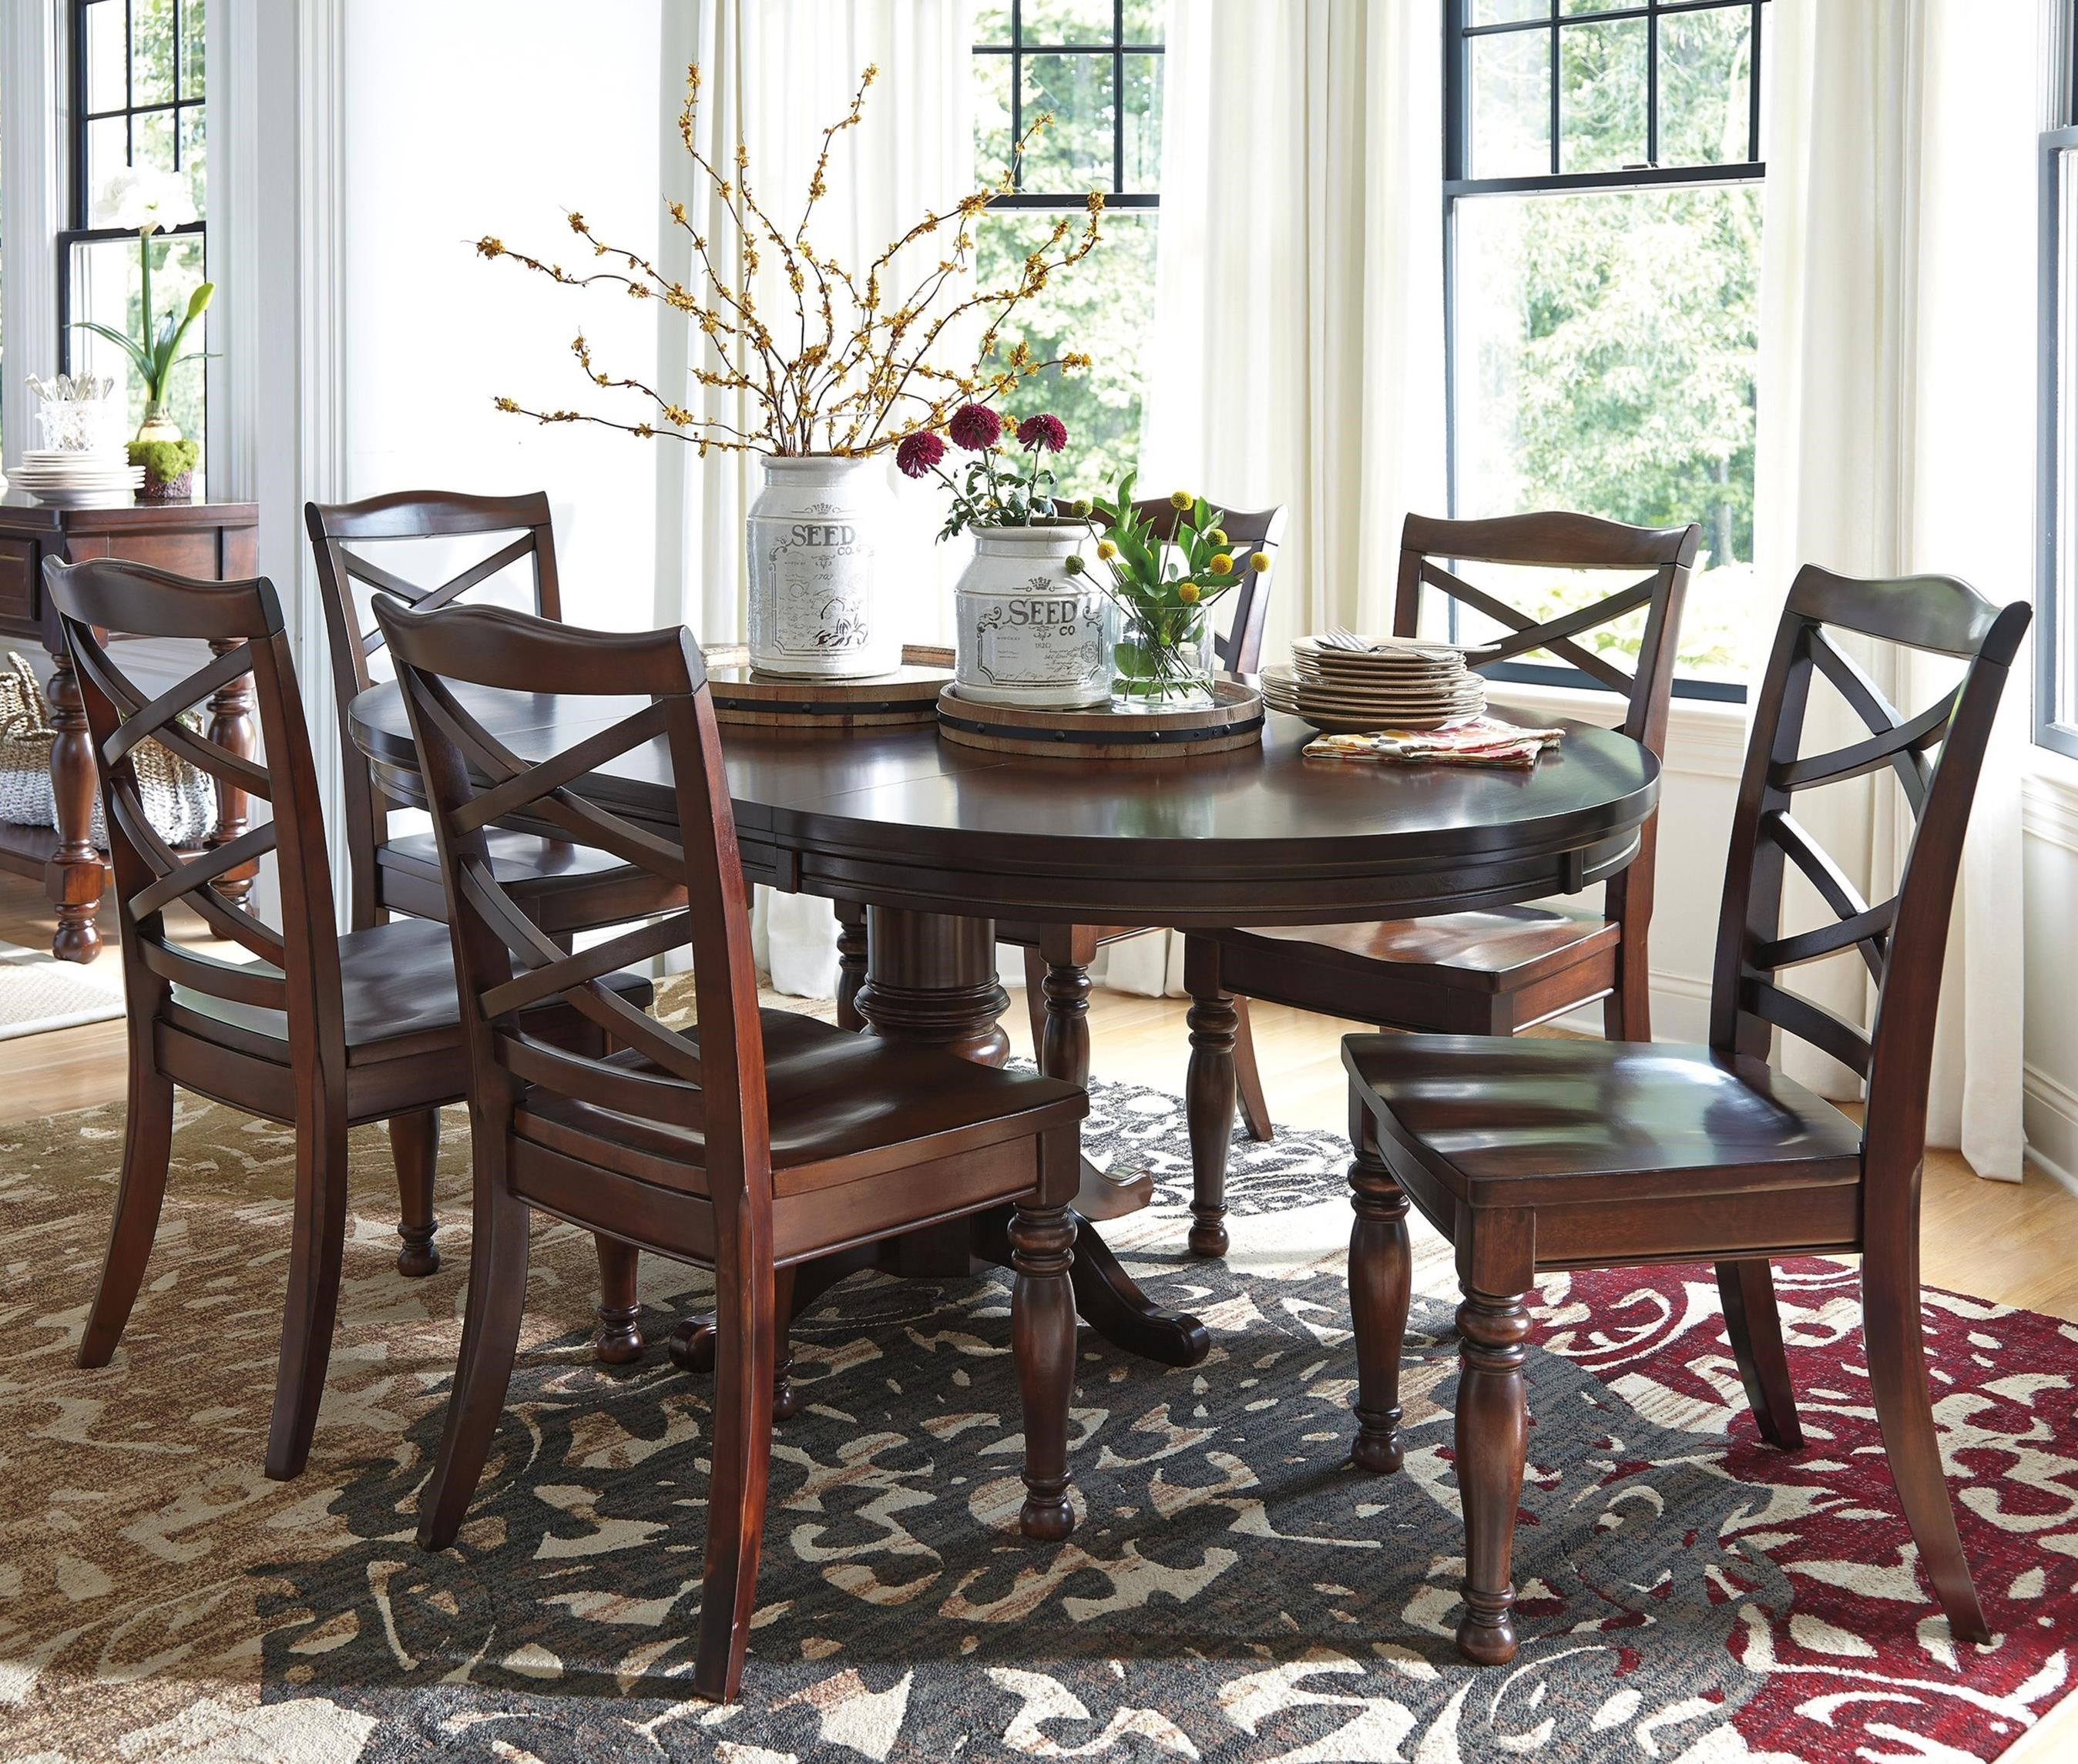 Ashley Furniture Porter7-Piece Round Dining Table Set ... & Ashley Furniture Porter 7-Piece Round Dining Table Set | John V ...